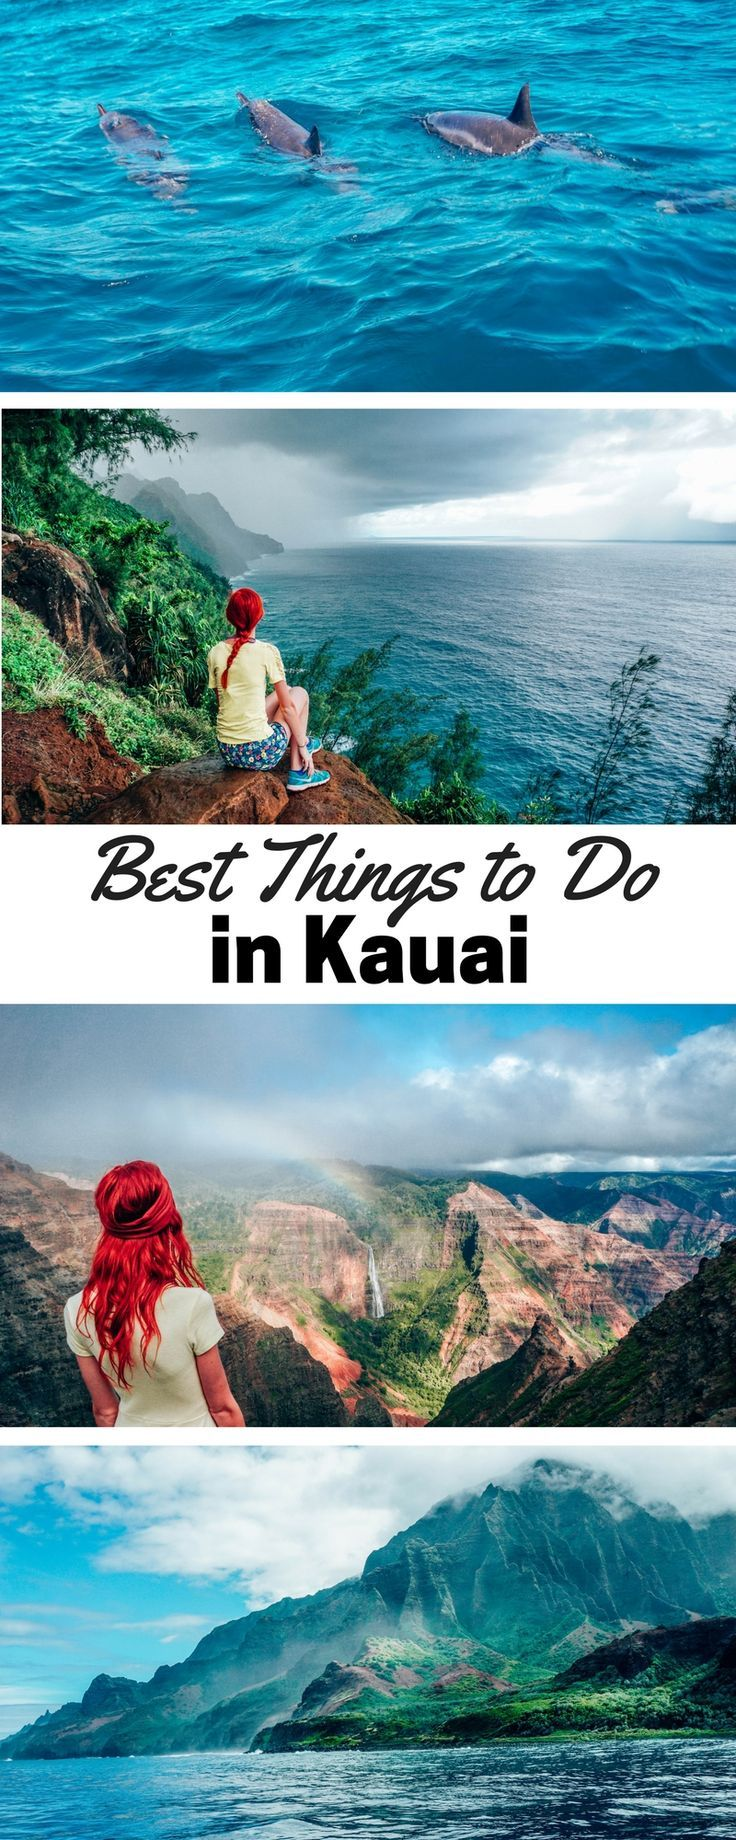 Best Things to do in Kauai, the Garden Island of Hawaii, USA